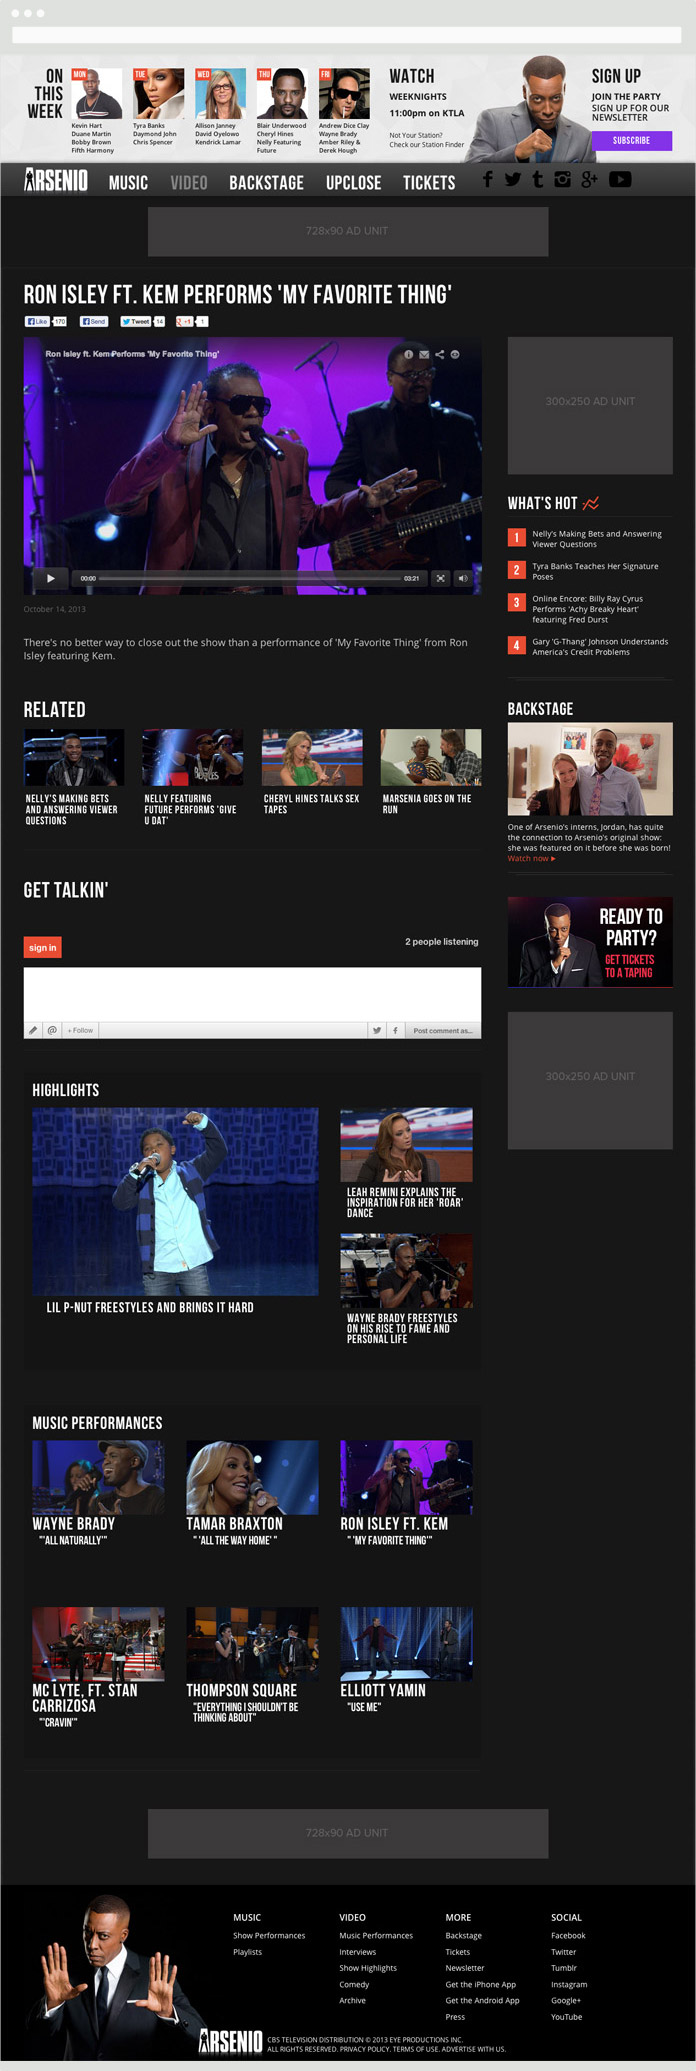 Image of the Arsenio Hall Article Page